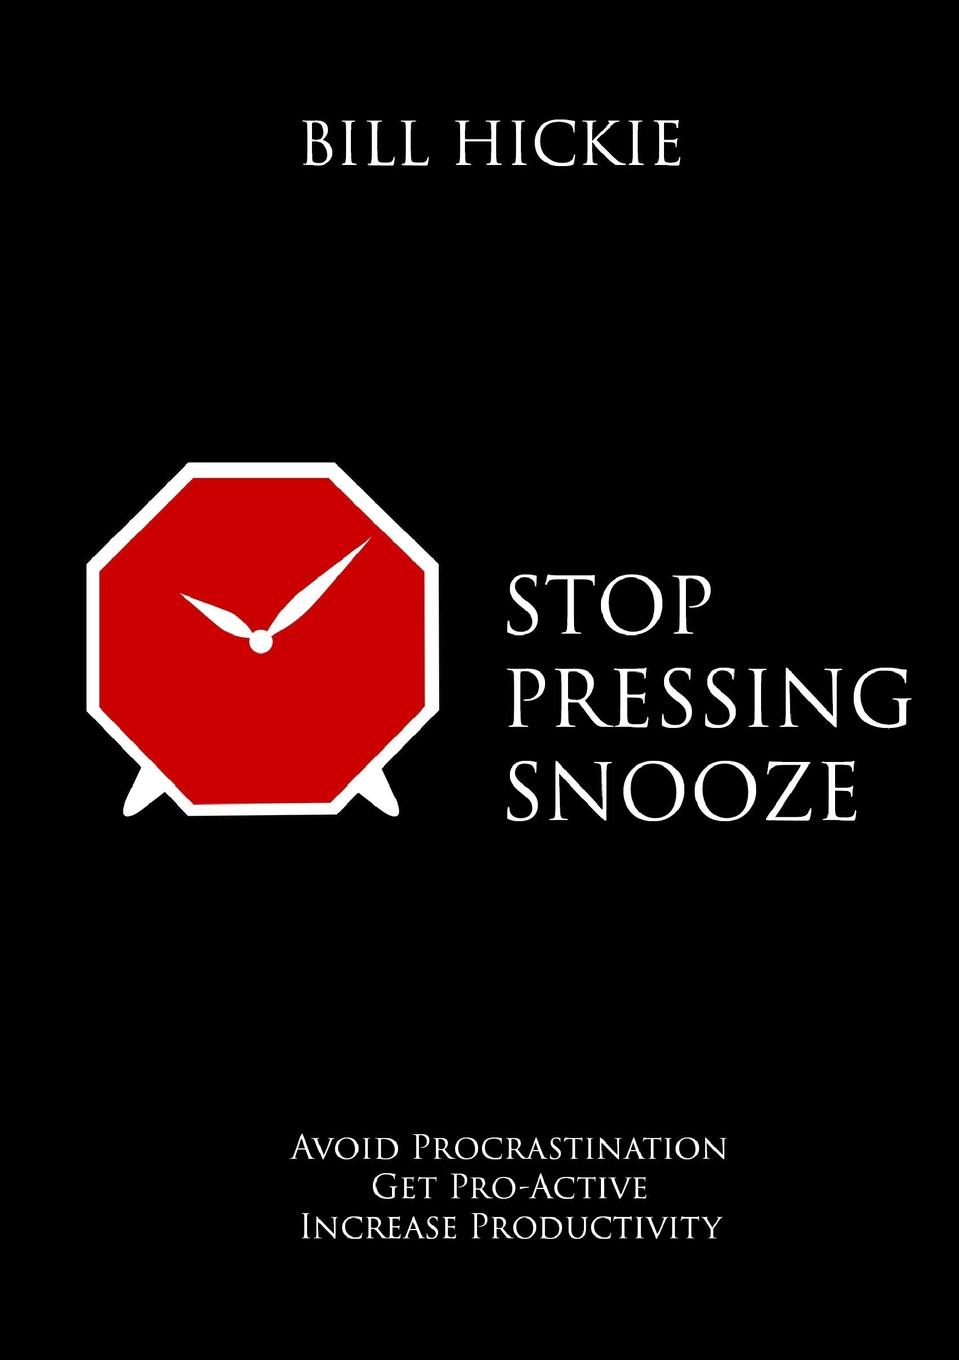 Bill Hickie Stop Pressing Snooze цена